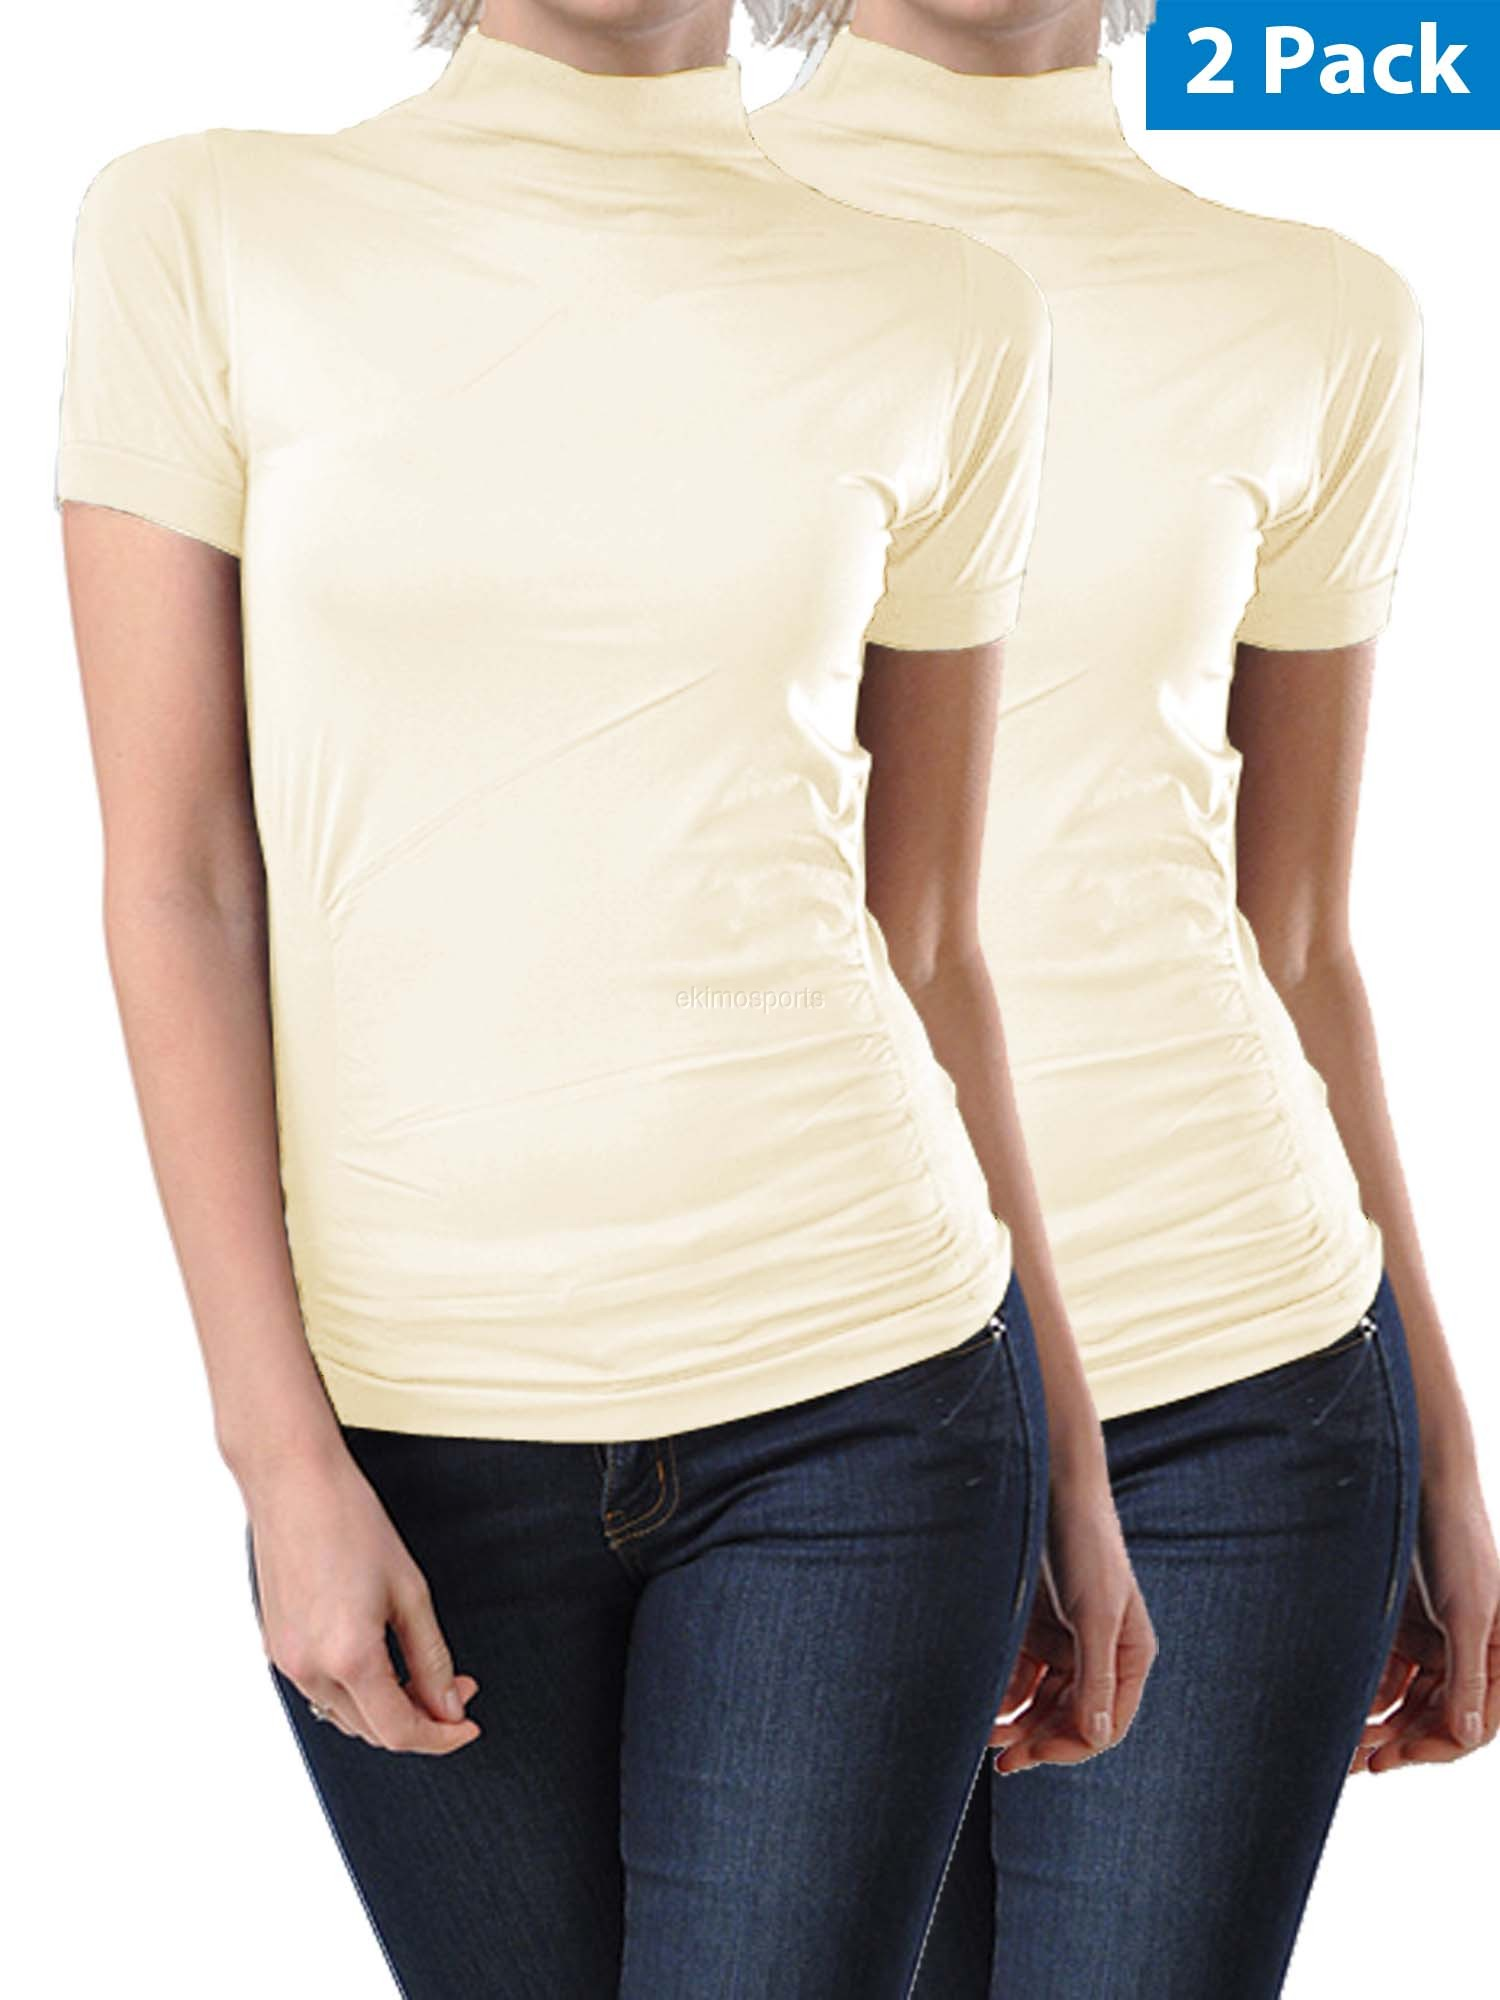 2 Pack Women Seamless Short Sleeve Mock Neck Turtleneck Blouse Top Tee Shirts by